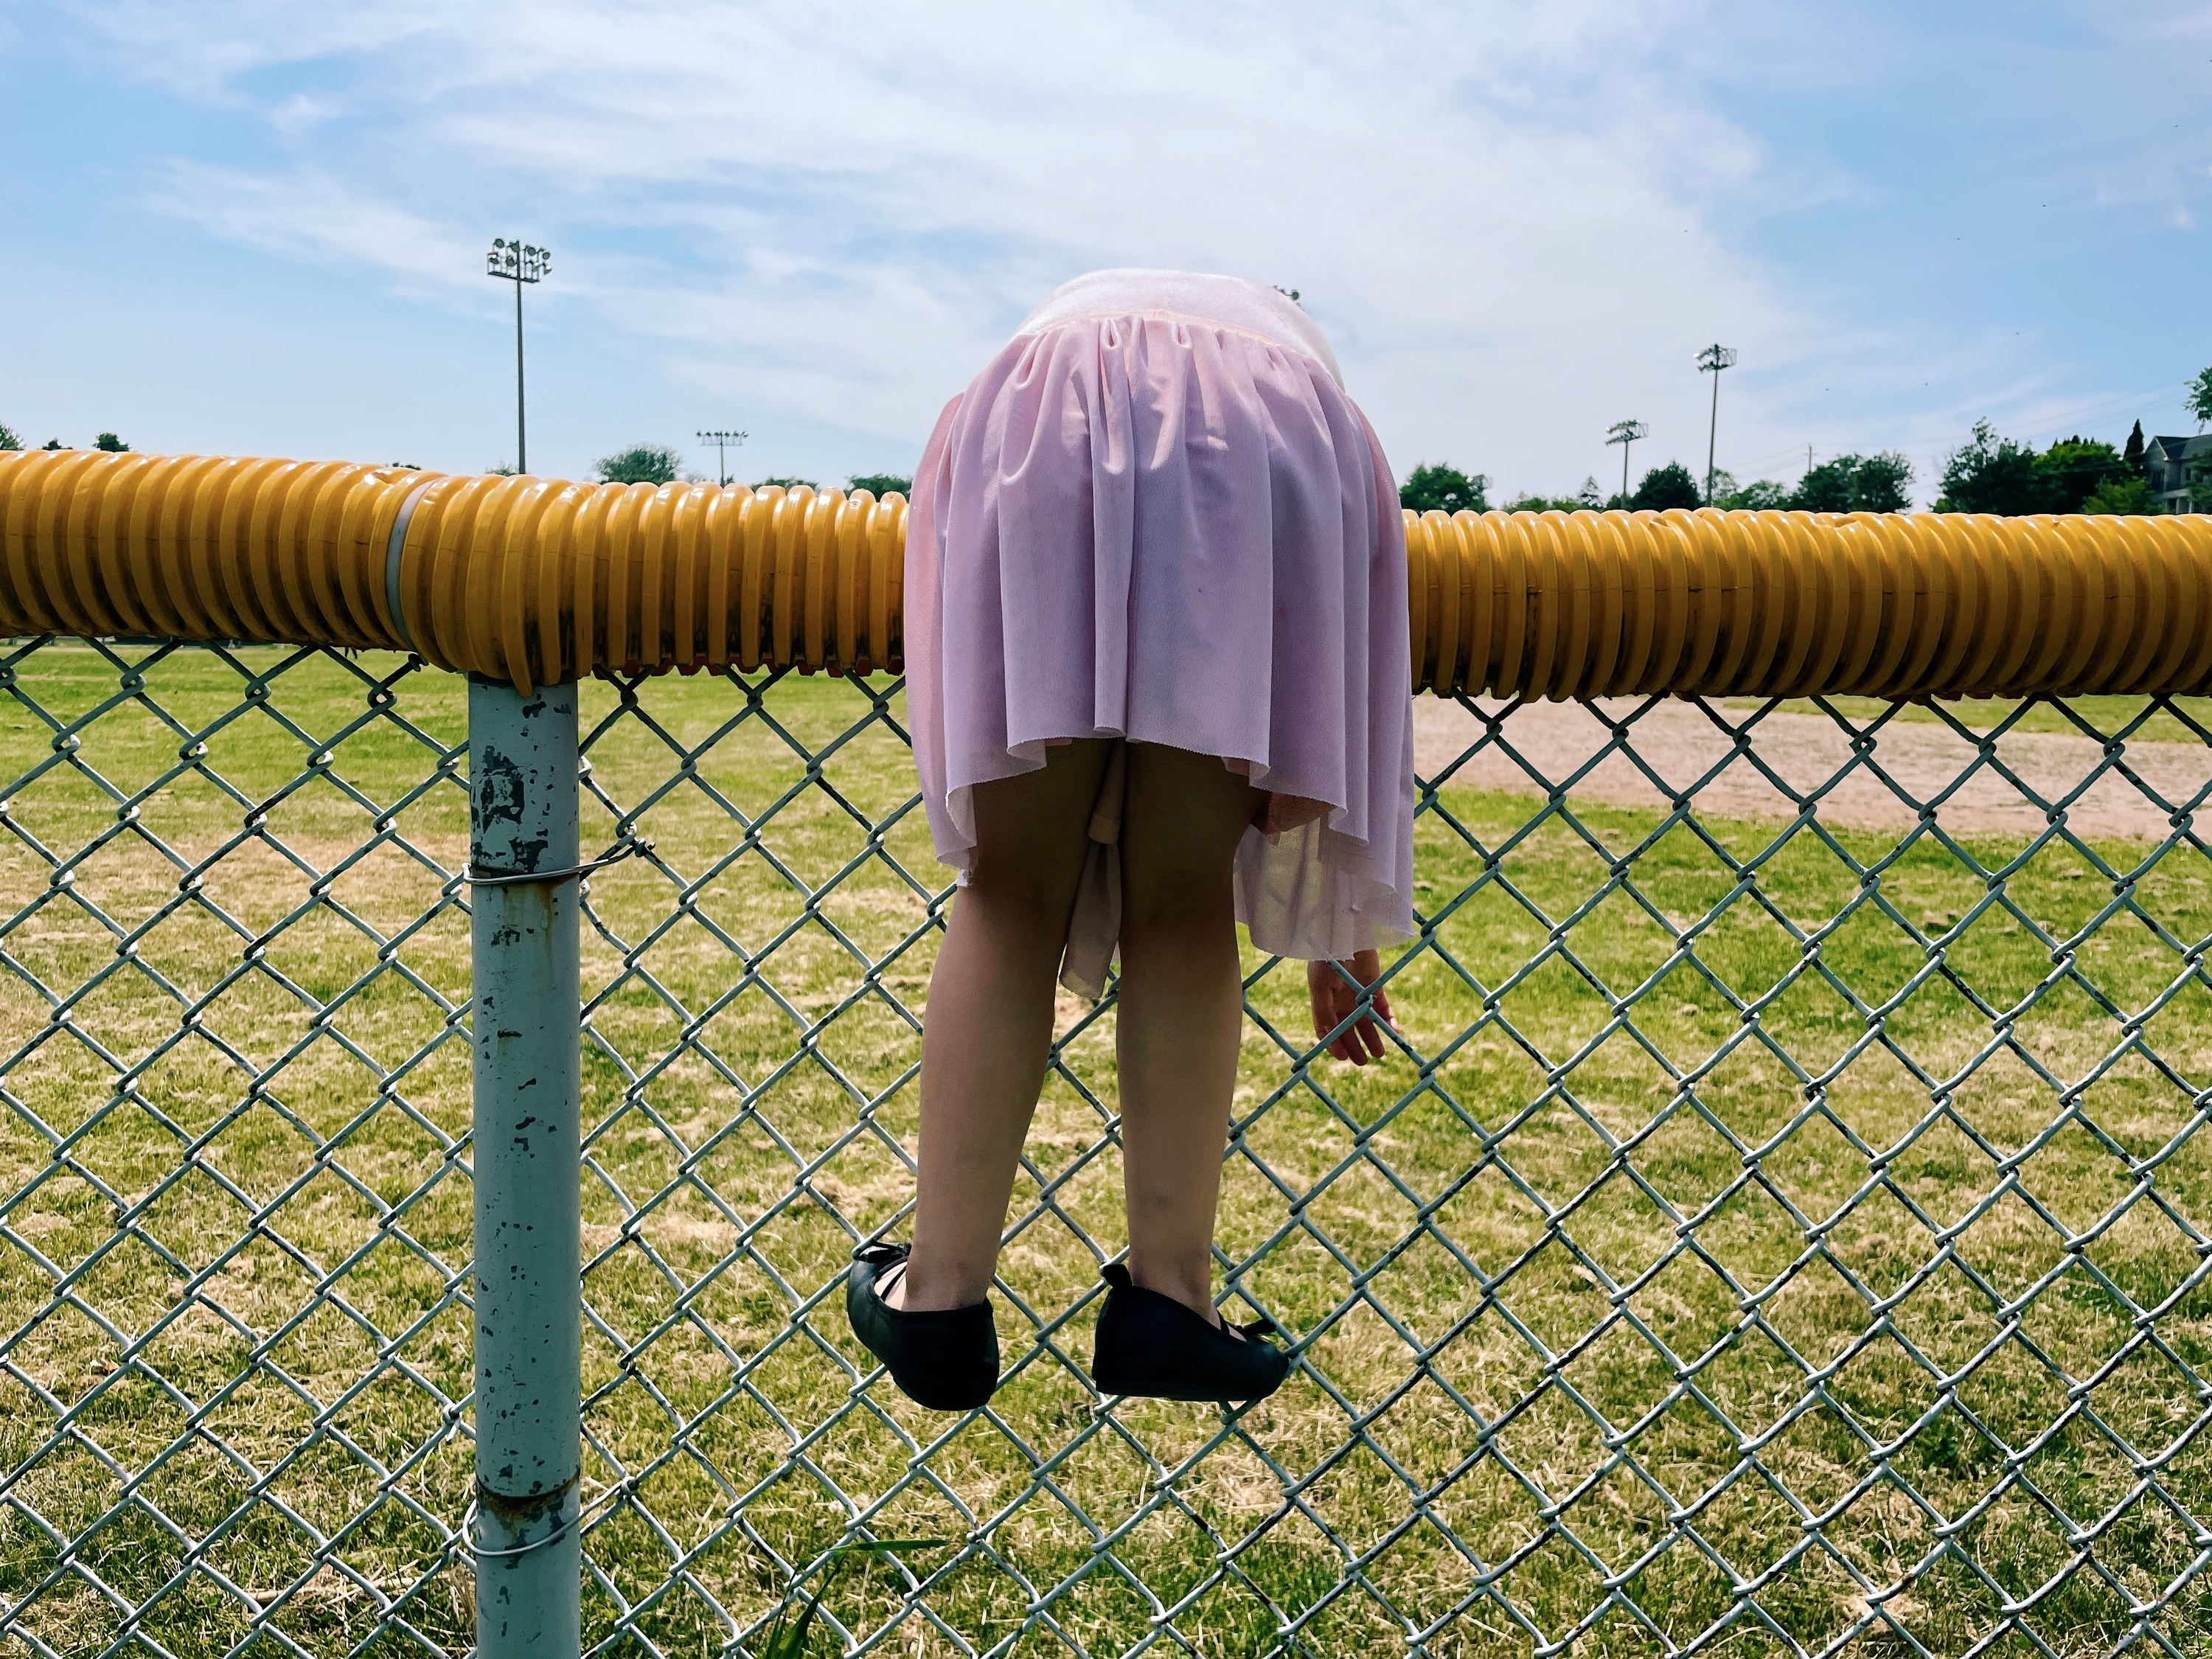 A girl in a dress hangs over a fence